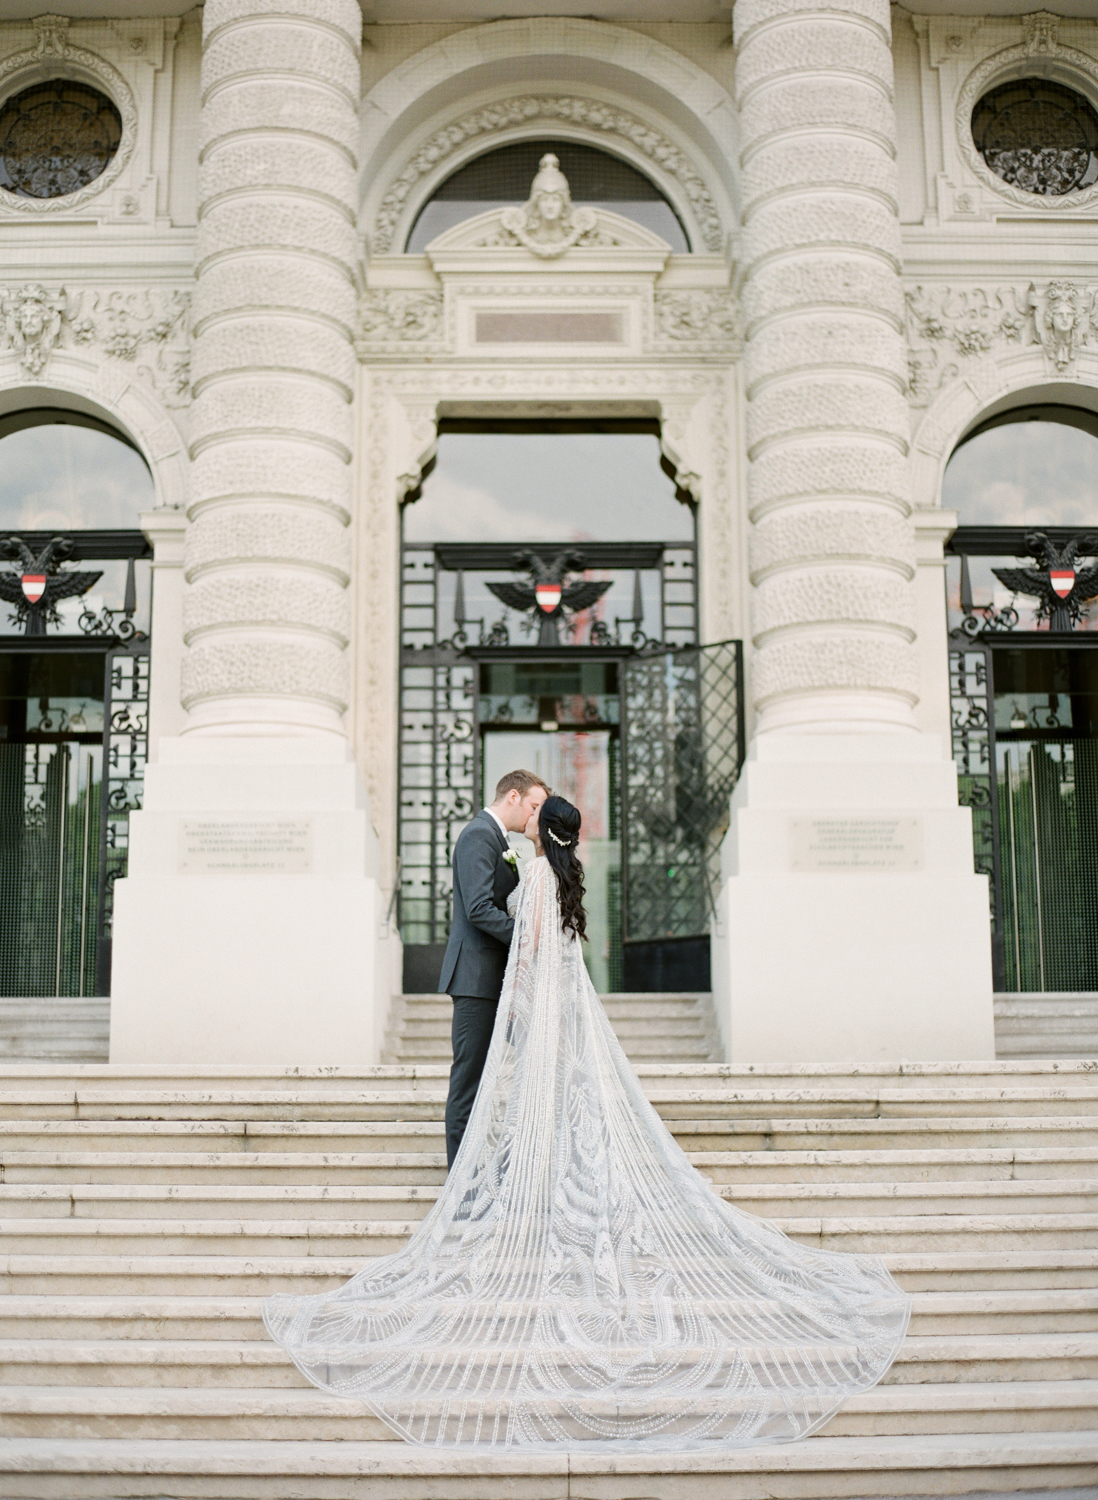 Vienna_prewedding_shoot_nikol_bodnarova_resized_01.JPG